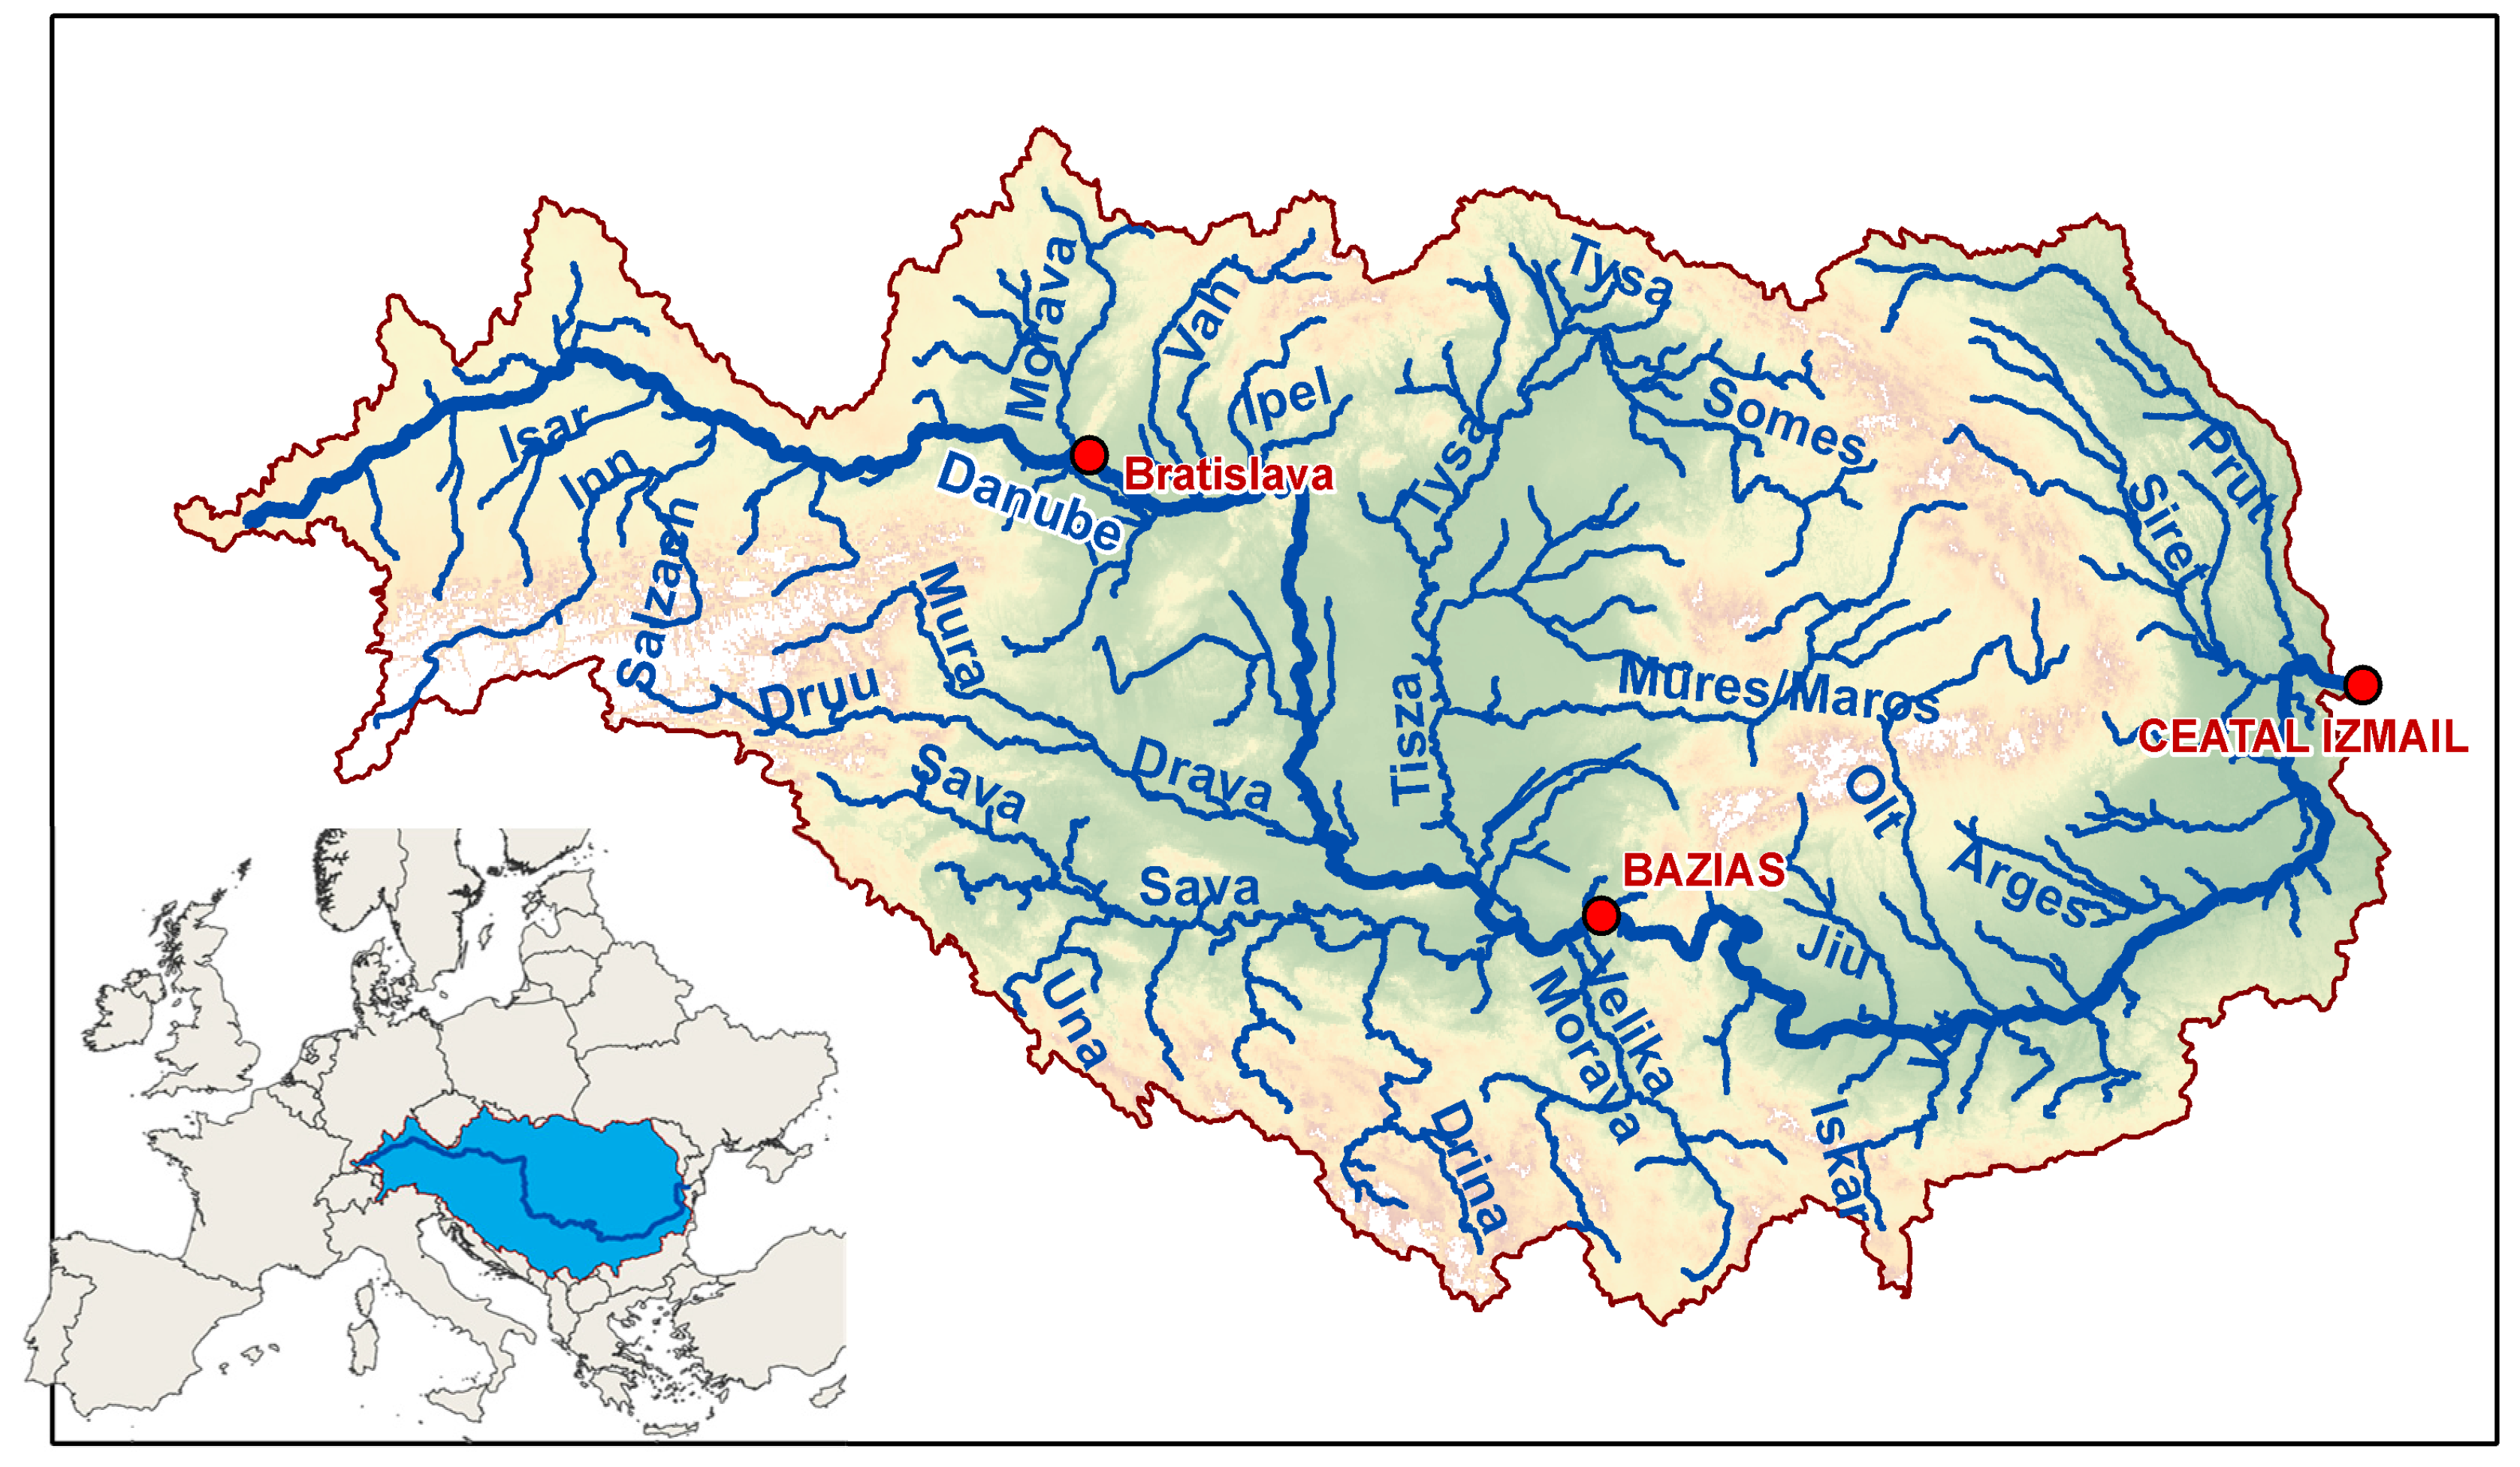 Water Free FullText Impacts Of Climate Change On Riverine - Danube river on world map